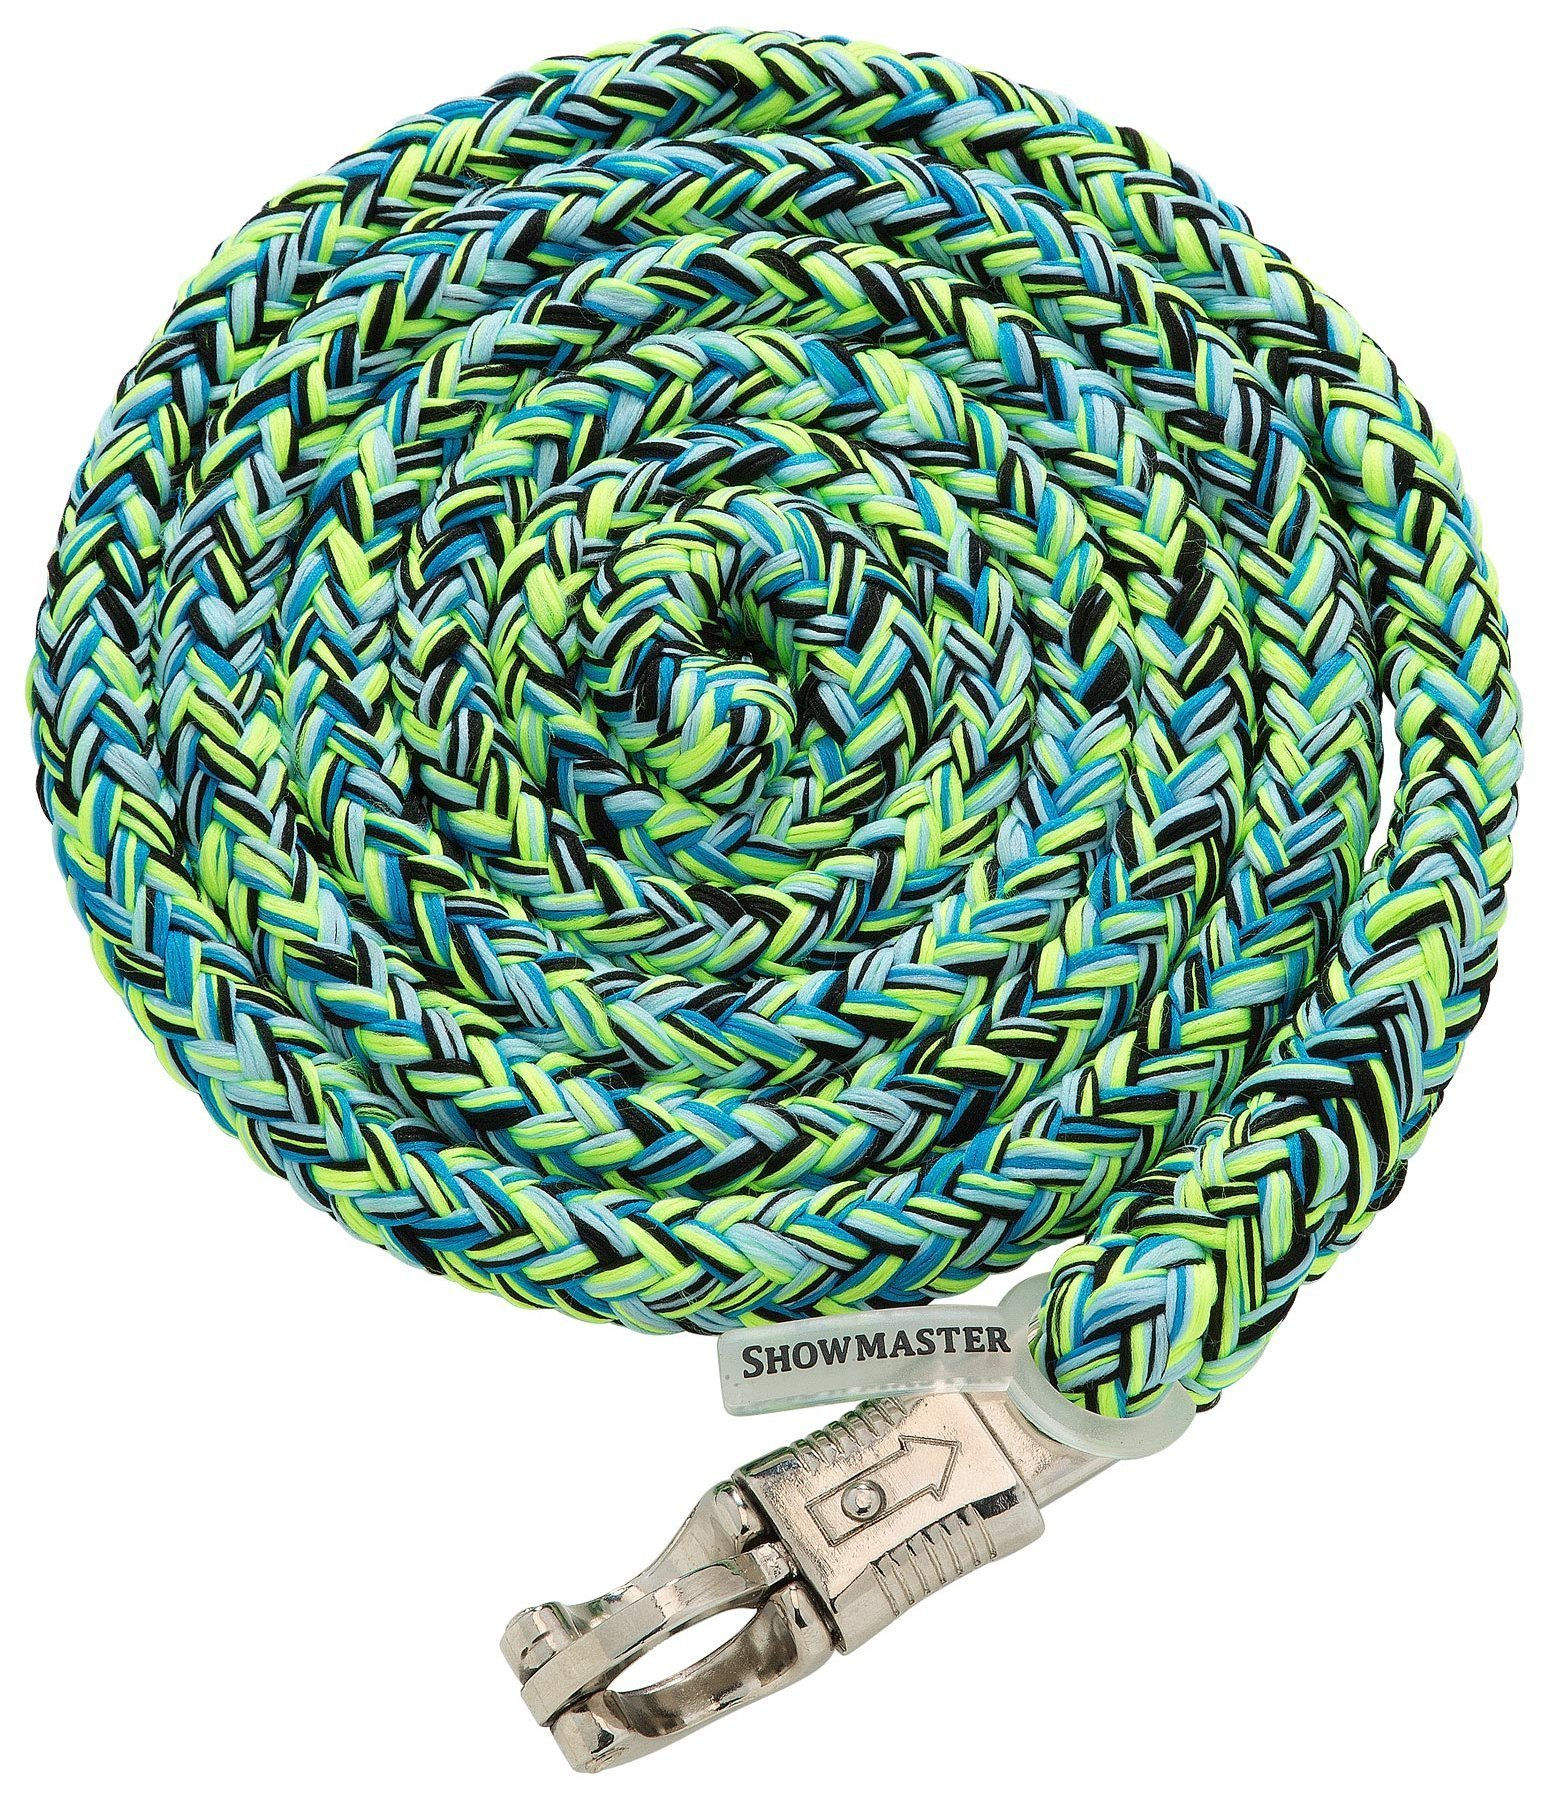 Lead Rope Bright with Panic Snap